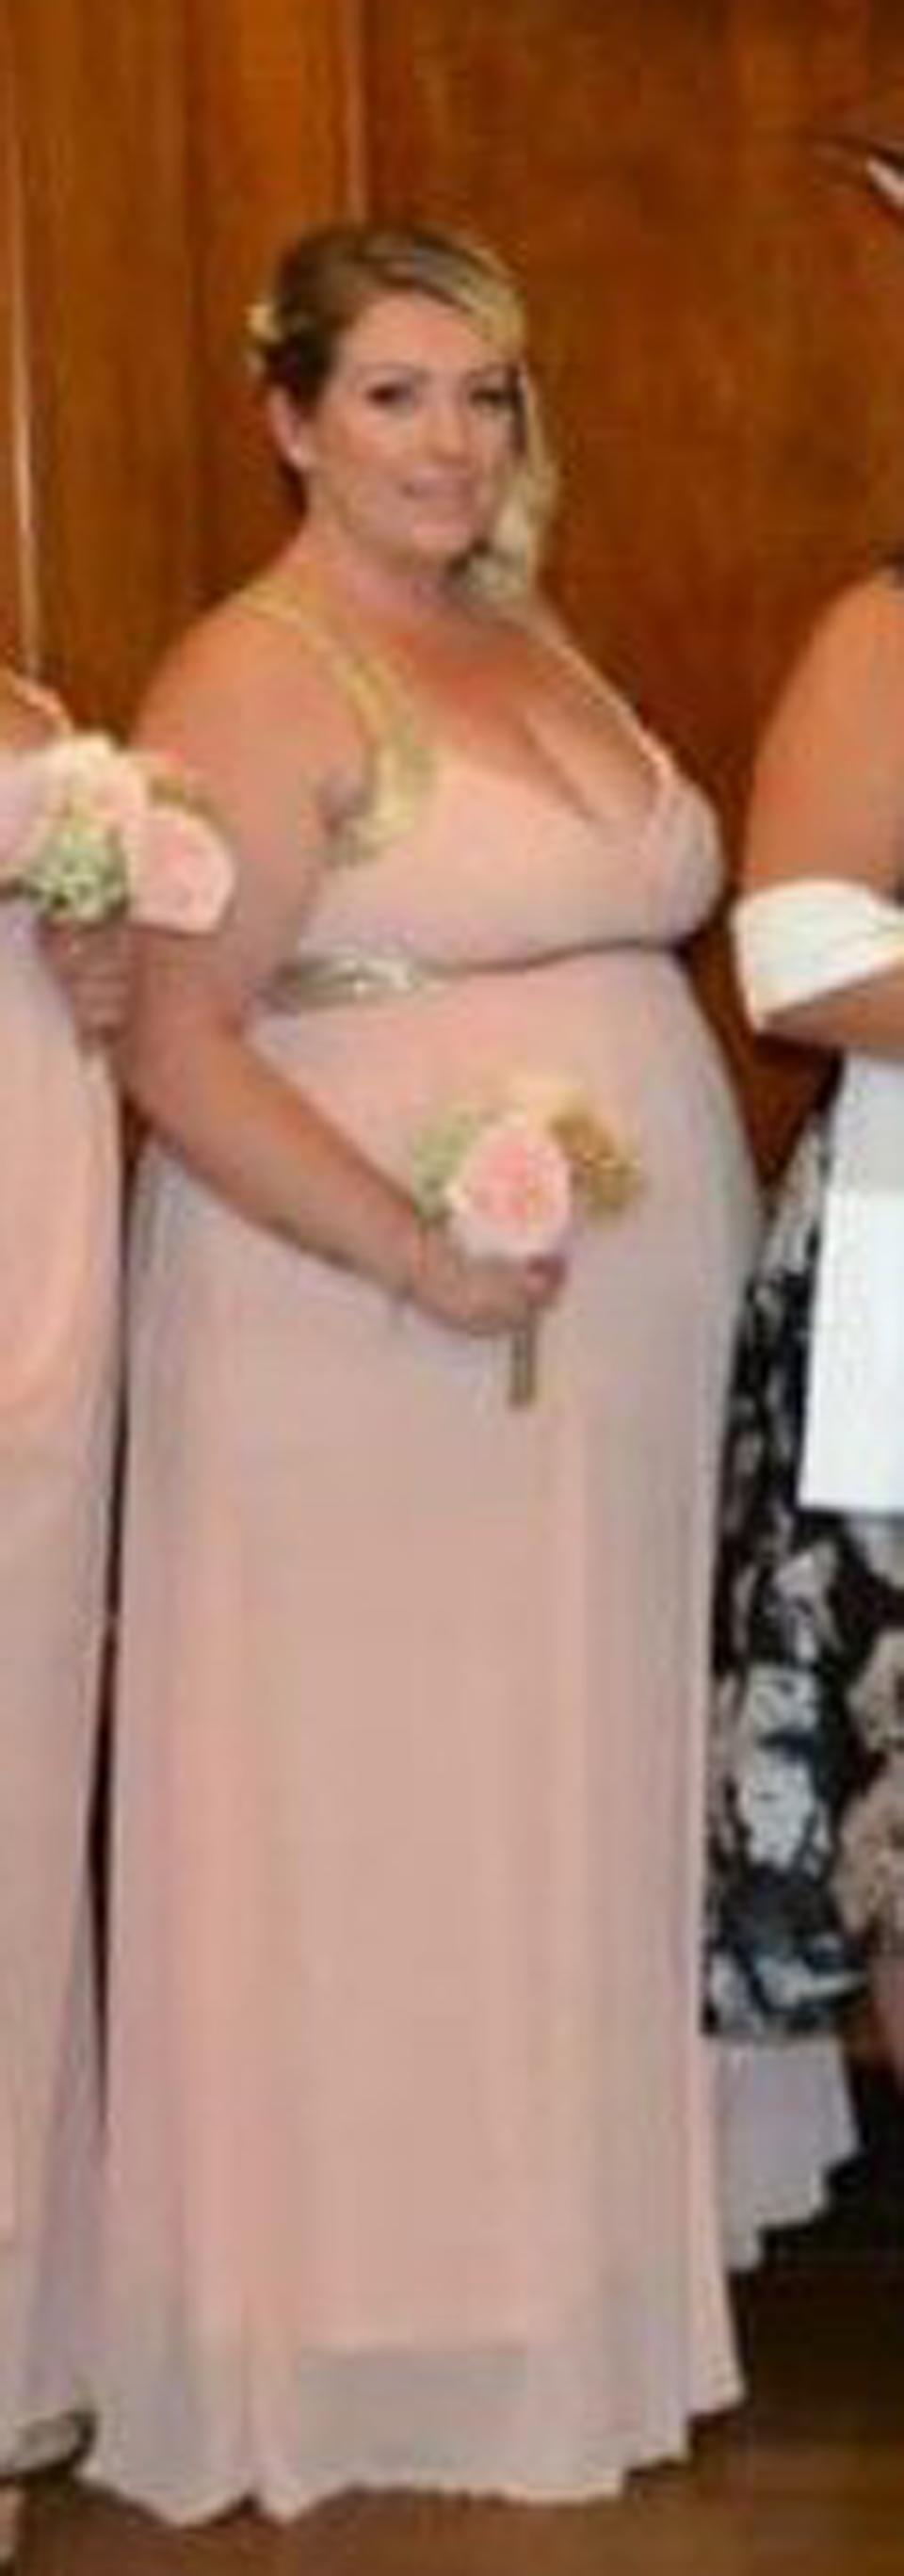 An obese bridesmaid has dropped six stone after a 'horrific' photo appeared online which made her look nine month pregnant. Ashleigh Bell, 32, says the photo changed her life and she suddenly realised that her size 24 waistline couldn't balloon any further. The mum-of-three spotted the photo on Facebook last July six months after her sister's wedding in 2018. Ashleigh says she felt 'mortified' by the awful image - which she says made her look pregnant - and actually apologised to her sister for being obese on her special day.